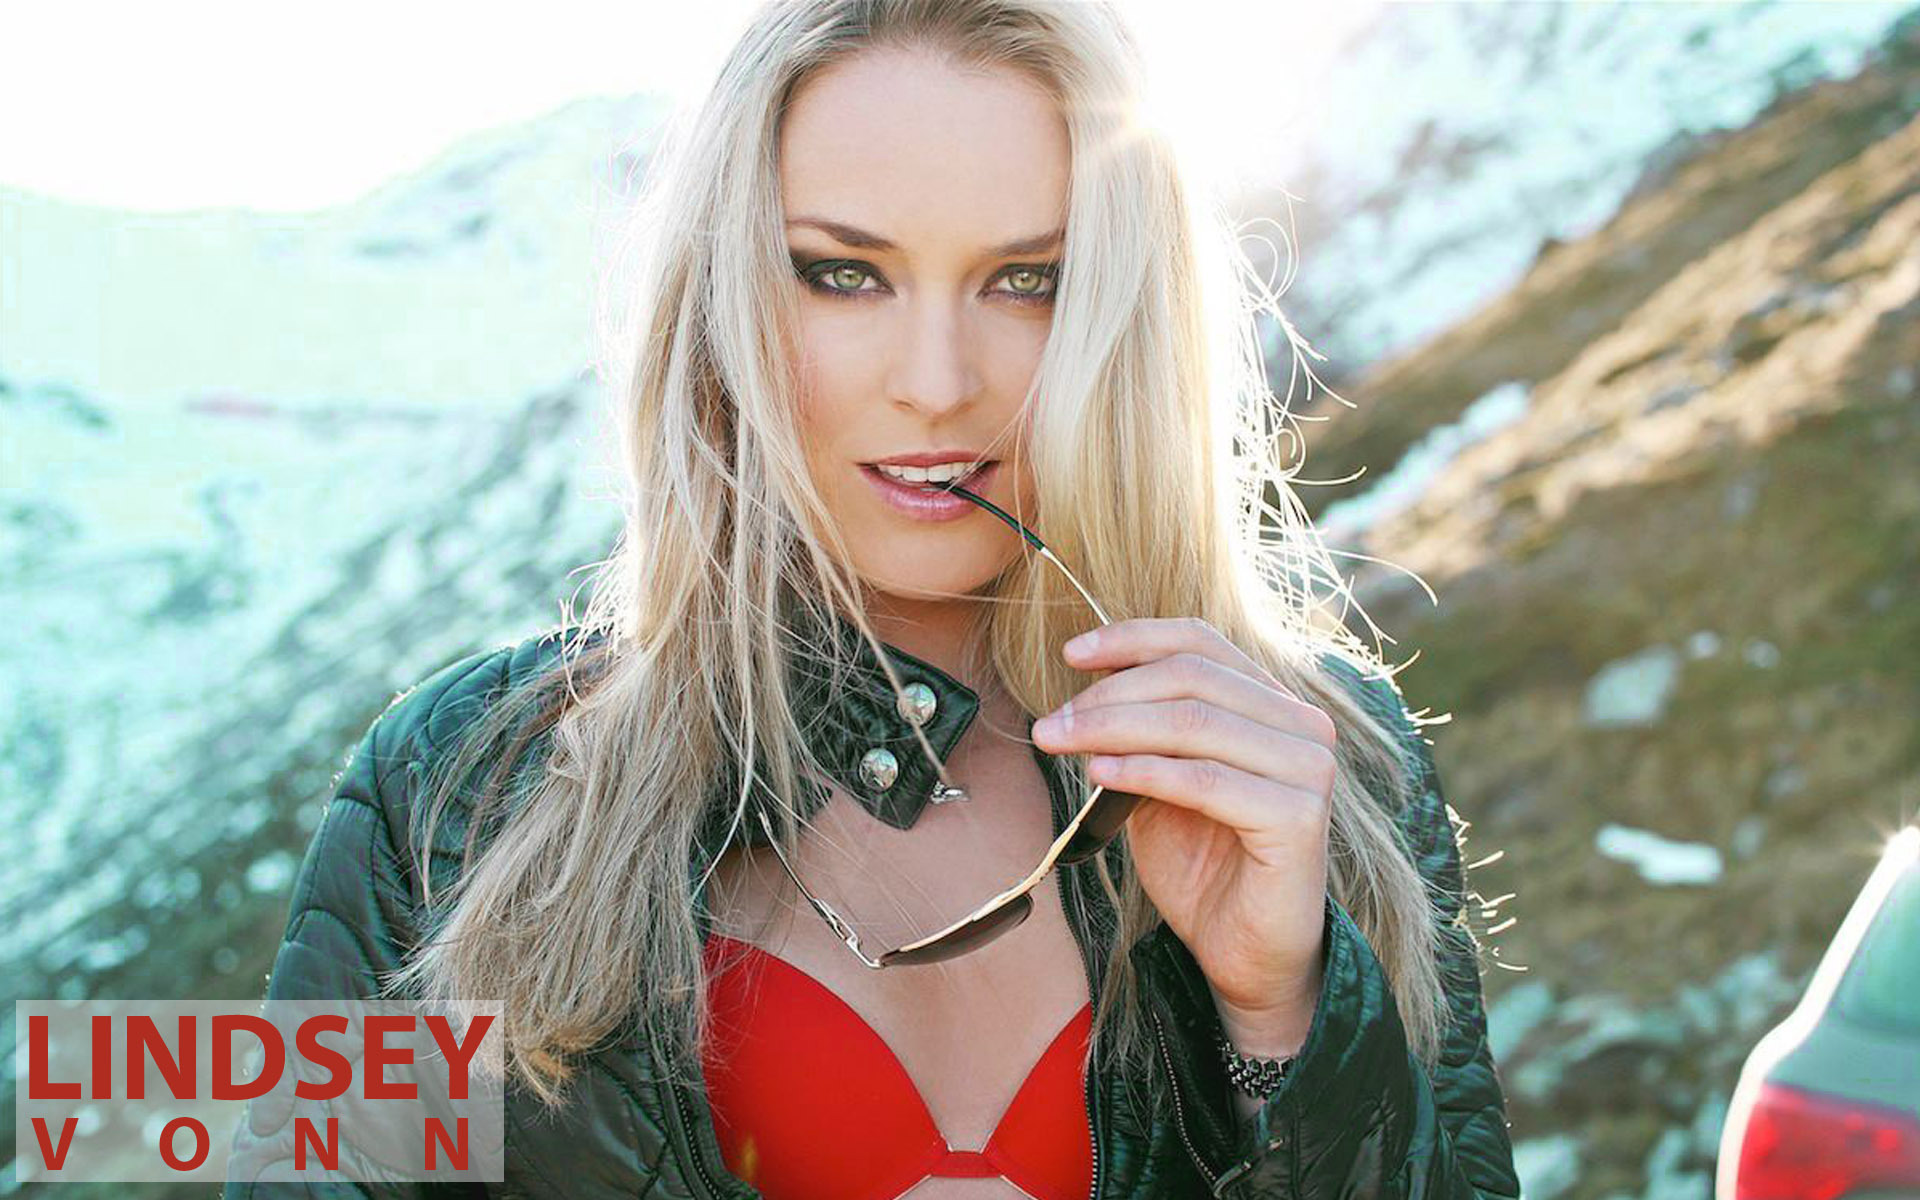 Lindsey Vonn Pictures